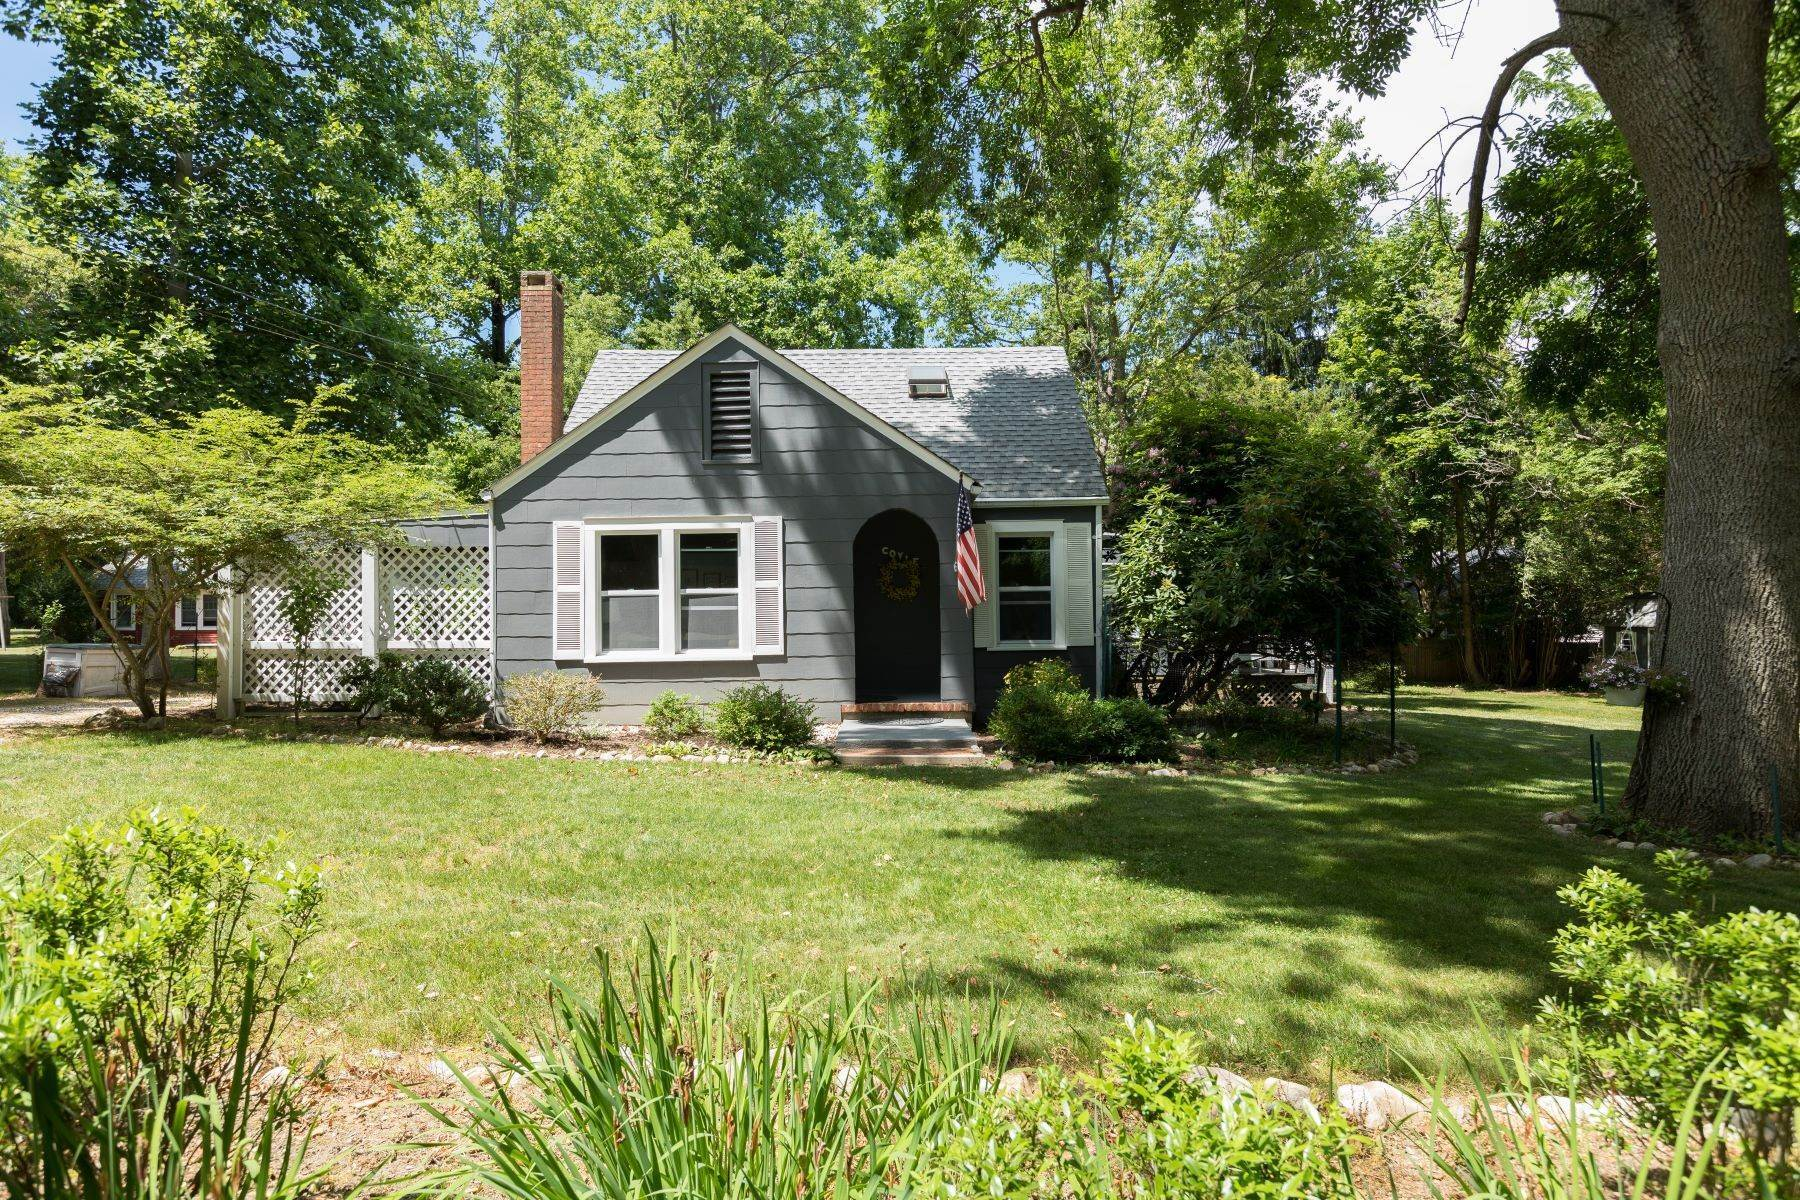 Single Family Homes for Sale at 142d Orchard Road, Shelter Island, Ny, 11964 142D Orchard Road Shelter Island, New York 11964 United States